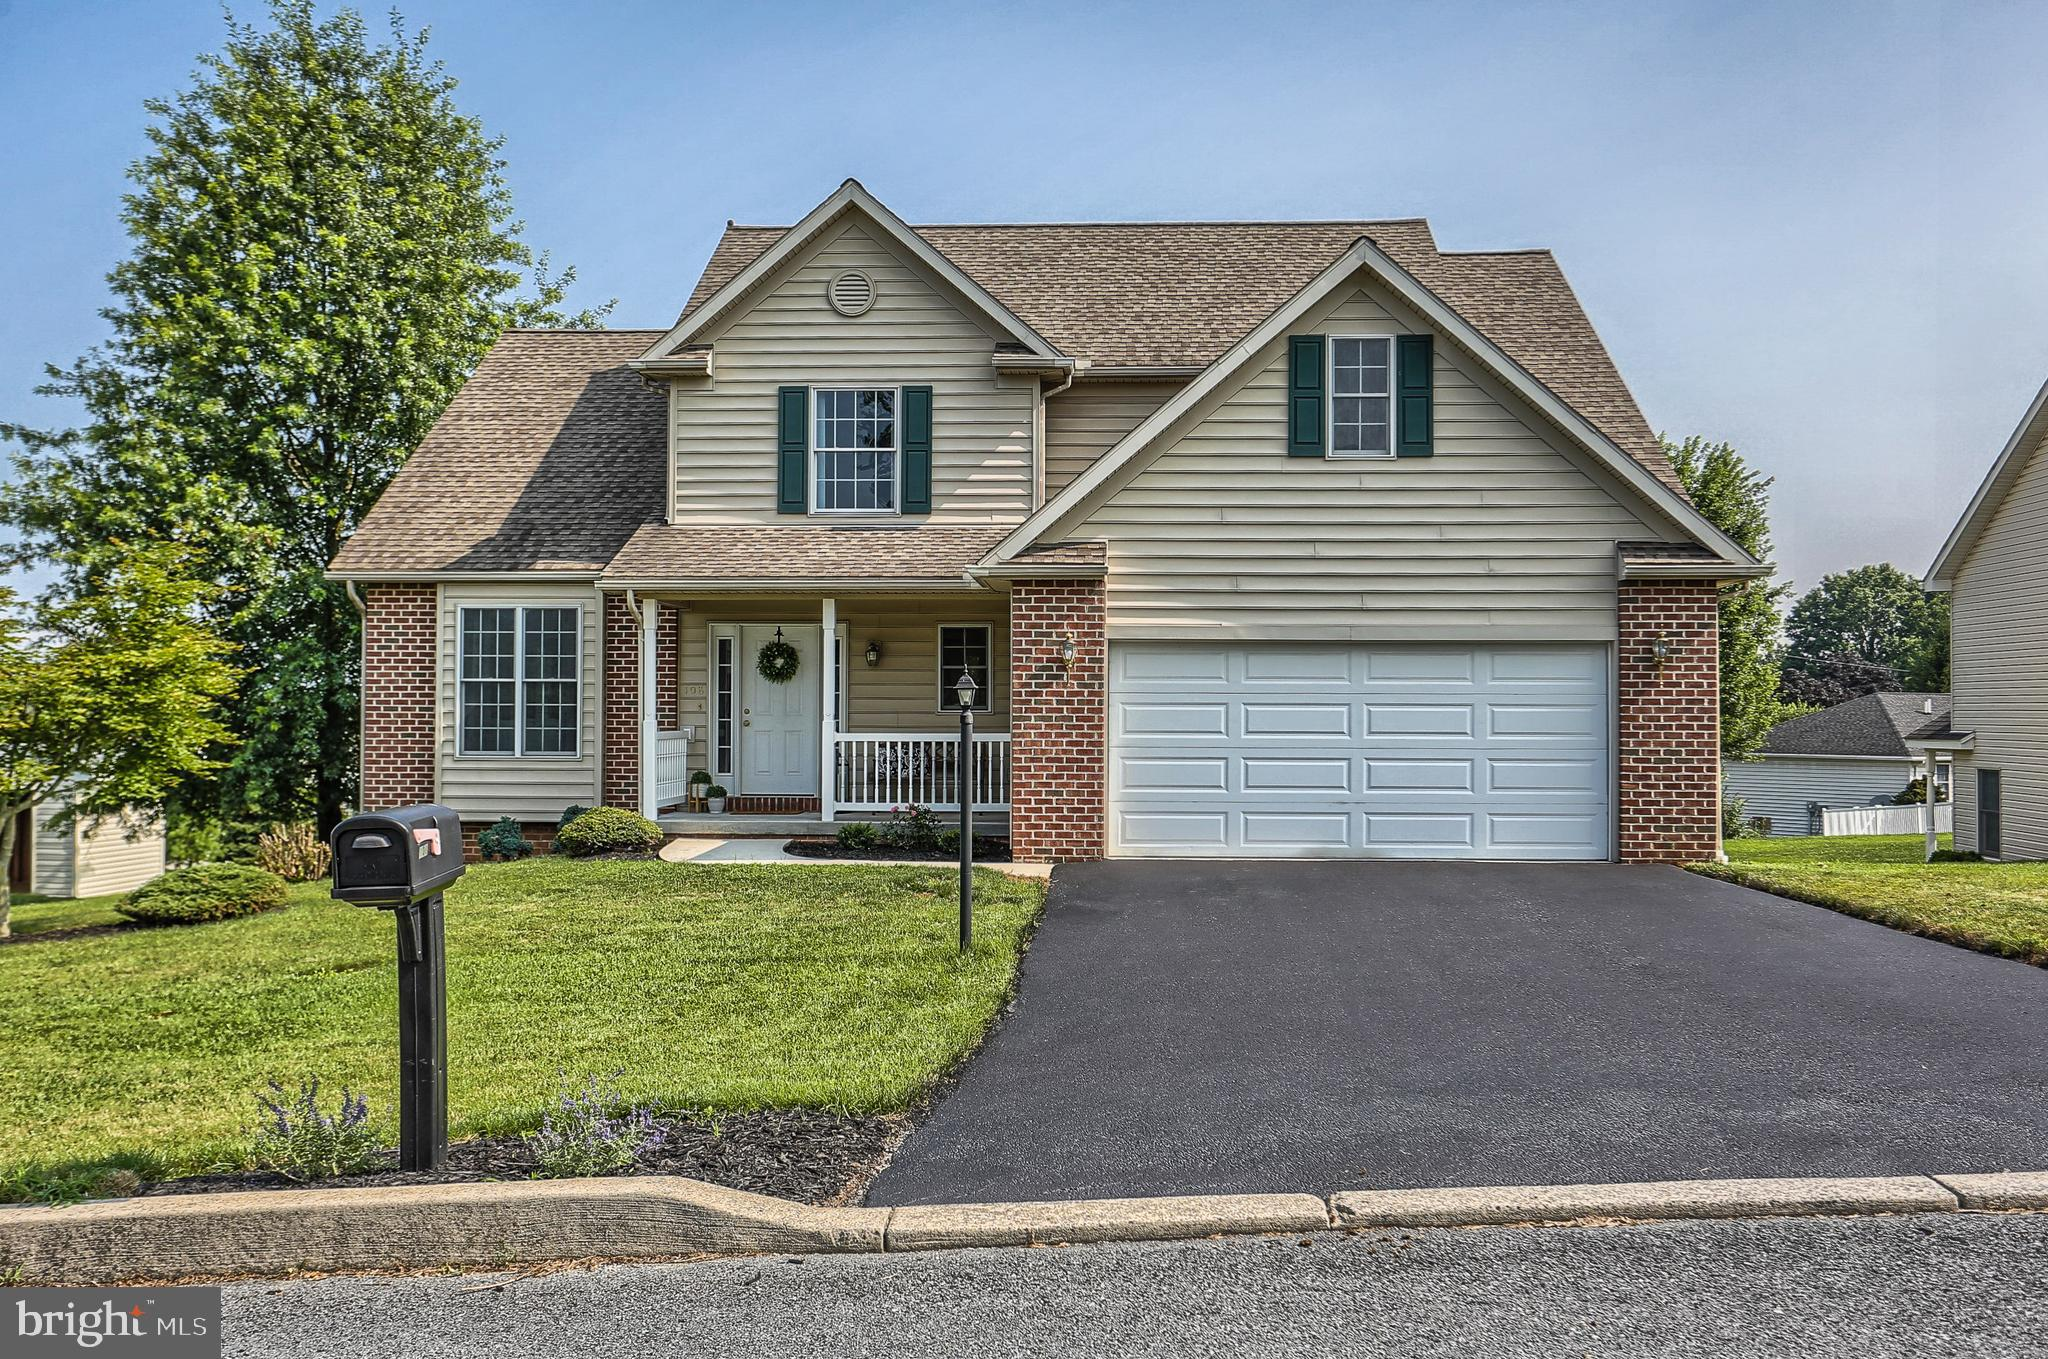 108 HILLTOP DRIVE, MOUNT HOLLY SPRINGS, PA 17065